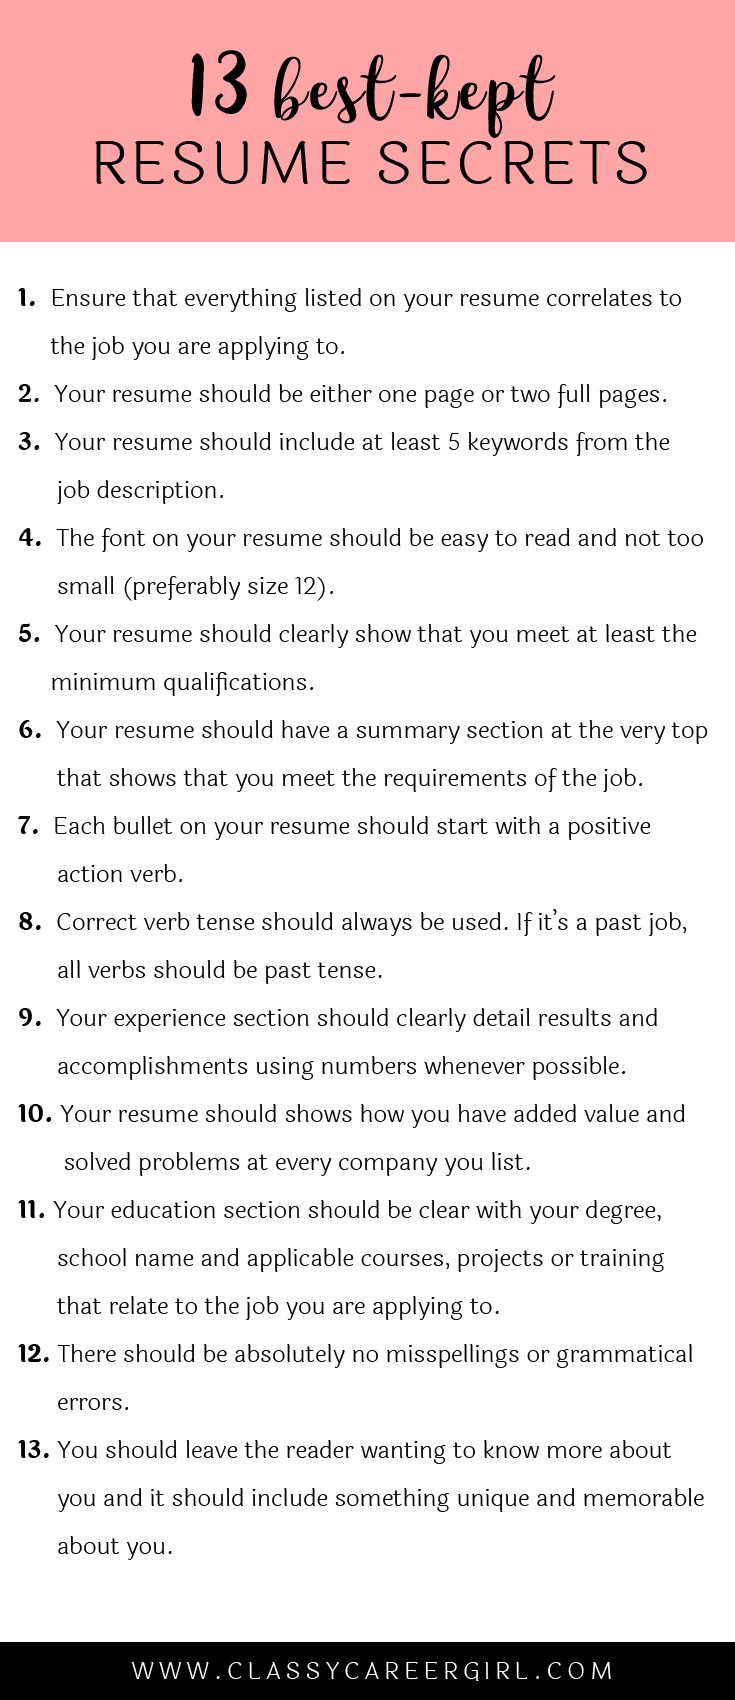 Opposenewapstandardsus  Pleasing  Ideas About Resume On Pinterest  Cv Format Resume Cv And  With Licious Some Hiring Managers Will Toss Your Resume Out If You Dont Know These  With Cute Examples Of Resume Summaries Also Treasury Analyst Resume In Addition Bartender Server Resume And Sample Bookkeeper Resume As Well As Law Firm Resume Additionally Experience Resume Example From Pinterestcom With Opposenewapstandardsus  Licious  Ideas About Resume On Pinterest  Cv Format Resume Cv And  With Cute Some Hiring Managers Will Toss Your Resume Out If You Dont Know These  And Pleasing Examples Of Resume Summaries Also Treasury Analyst Resume In Addition Bartender Server Resume From Pinterestcom